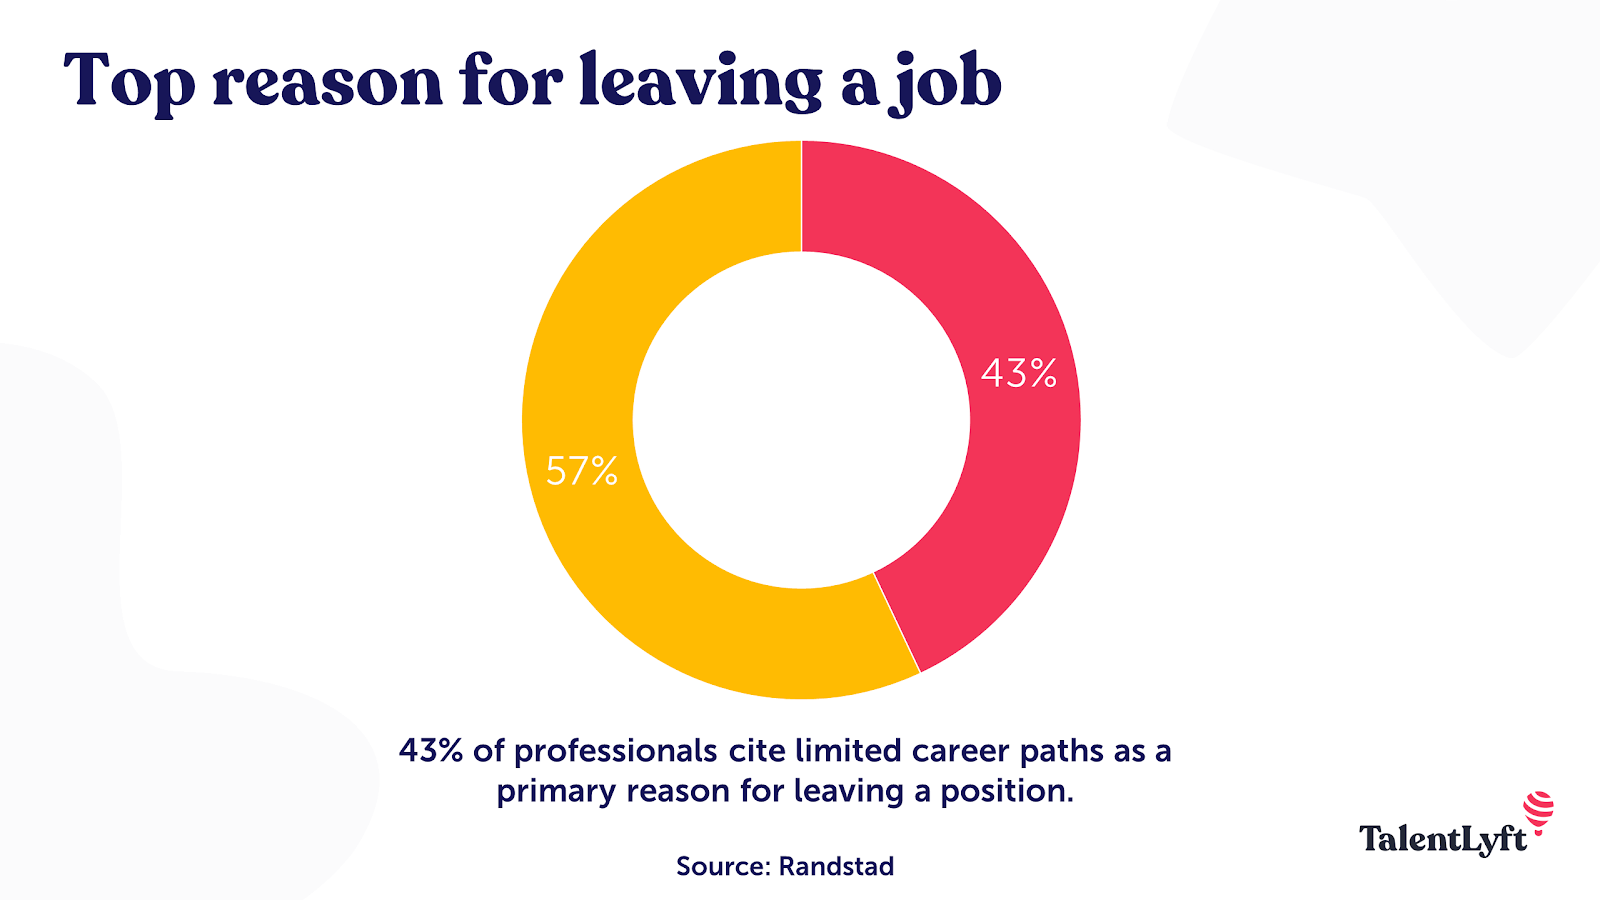 Key reason for leaving a job statistic